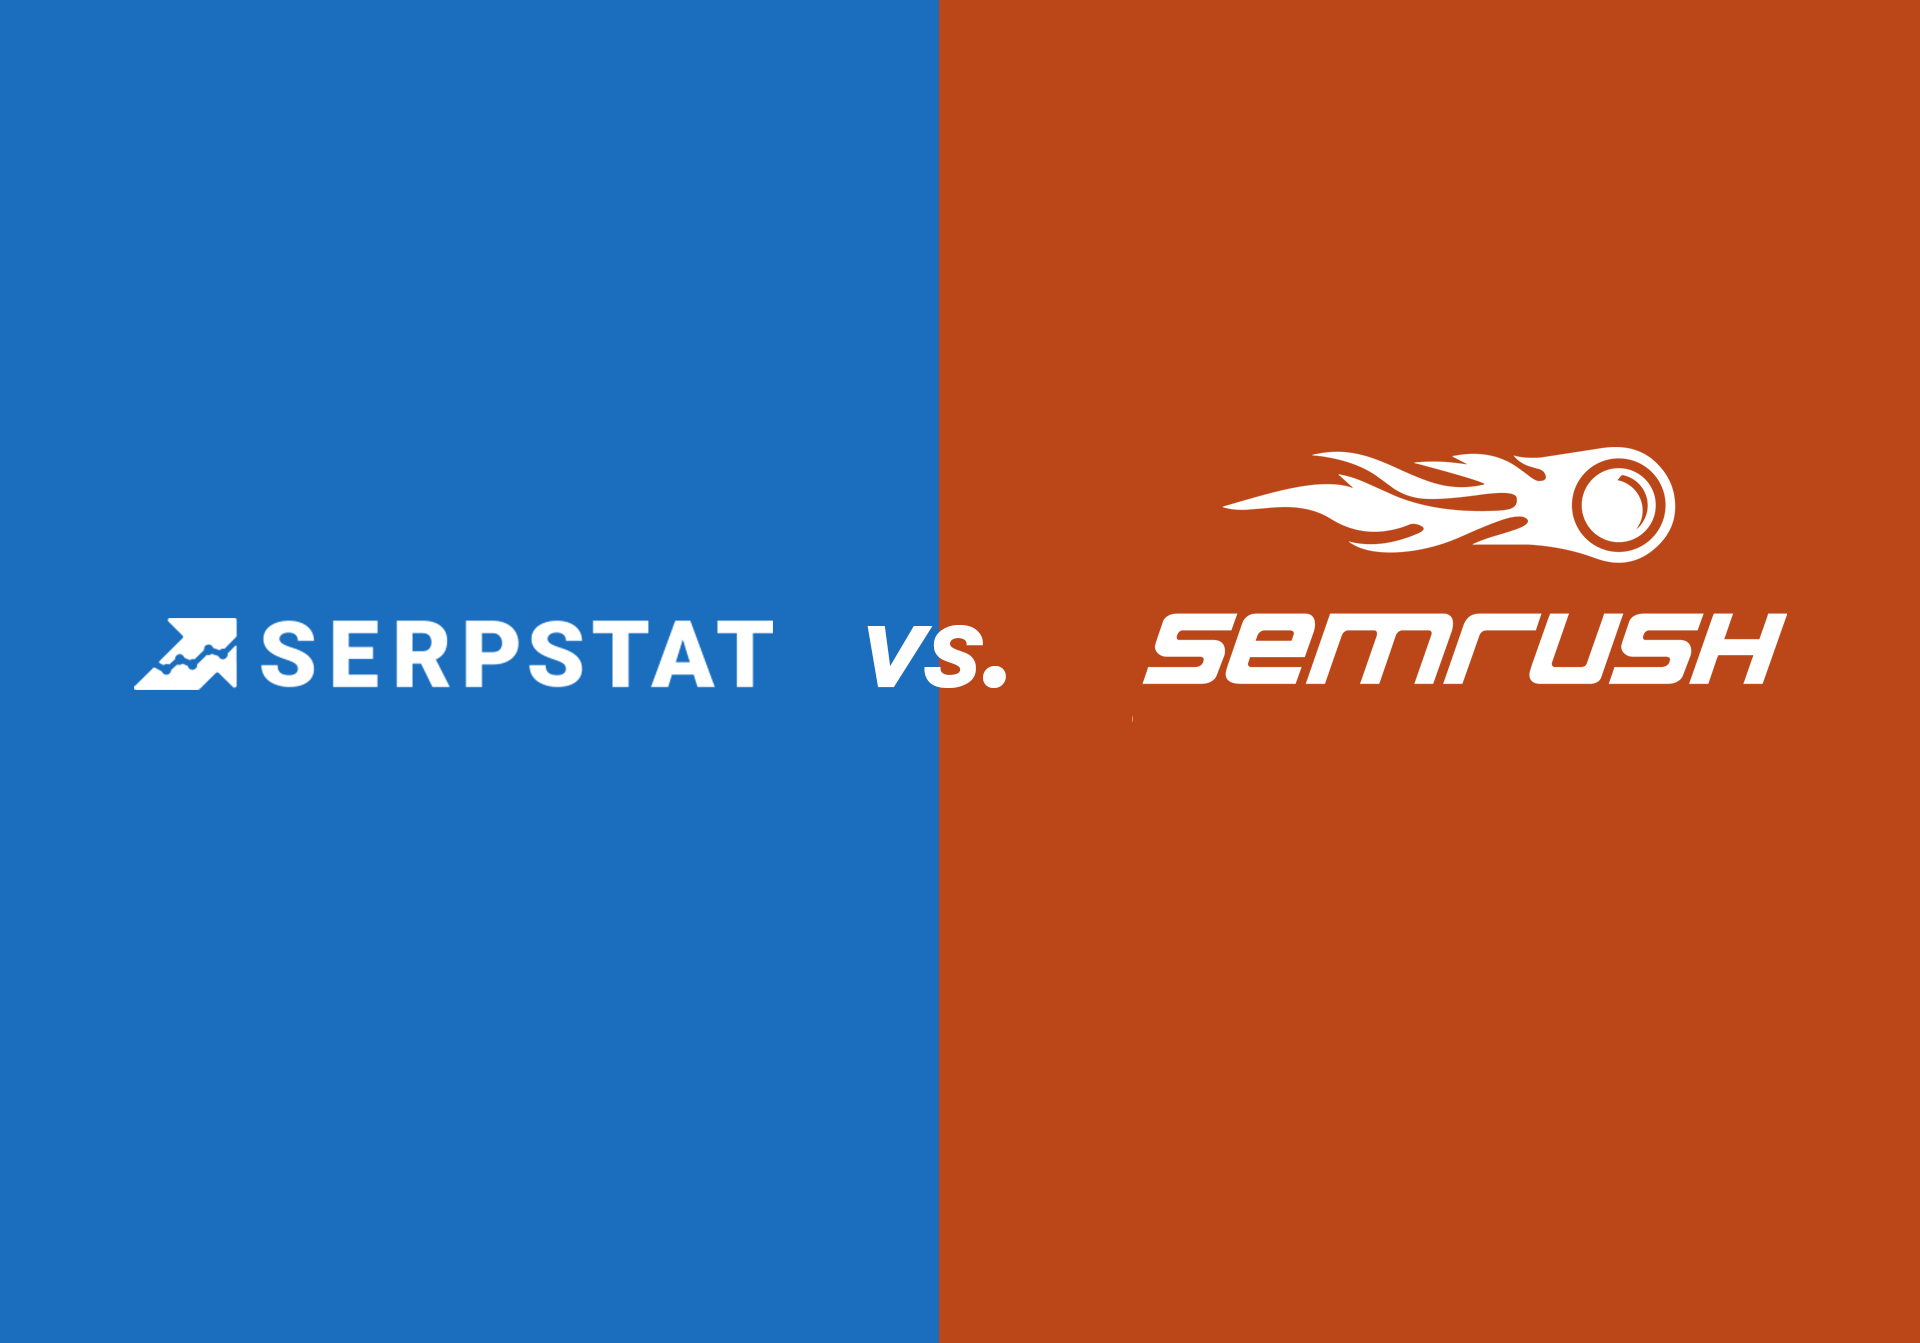 Who Has The Best Deal On Semrush